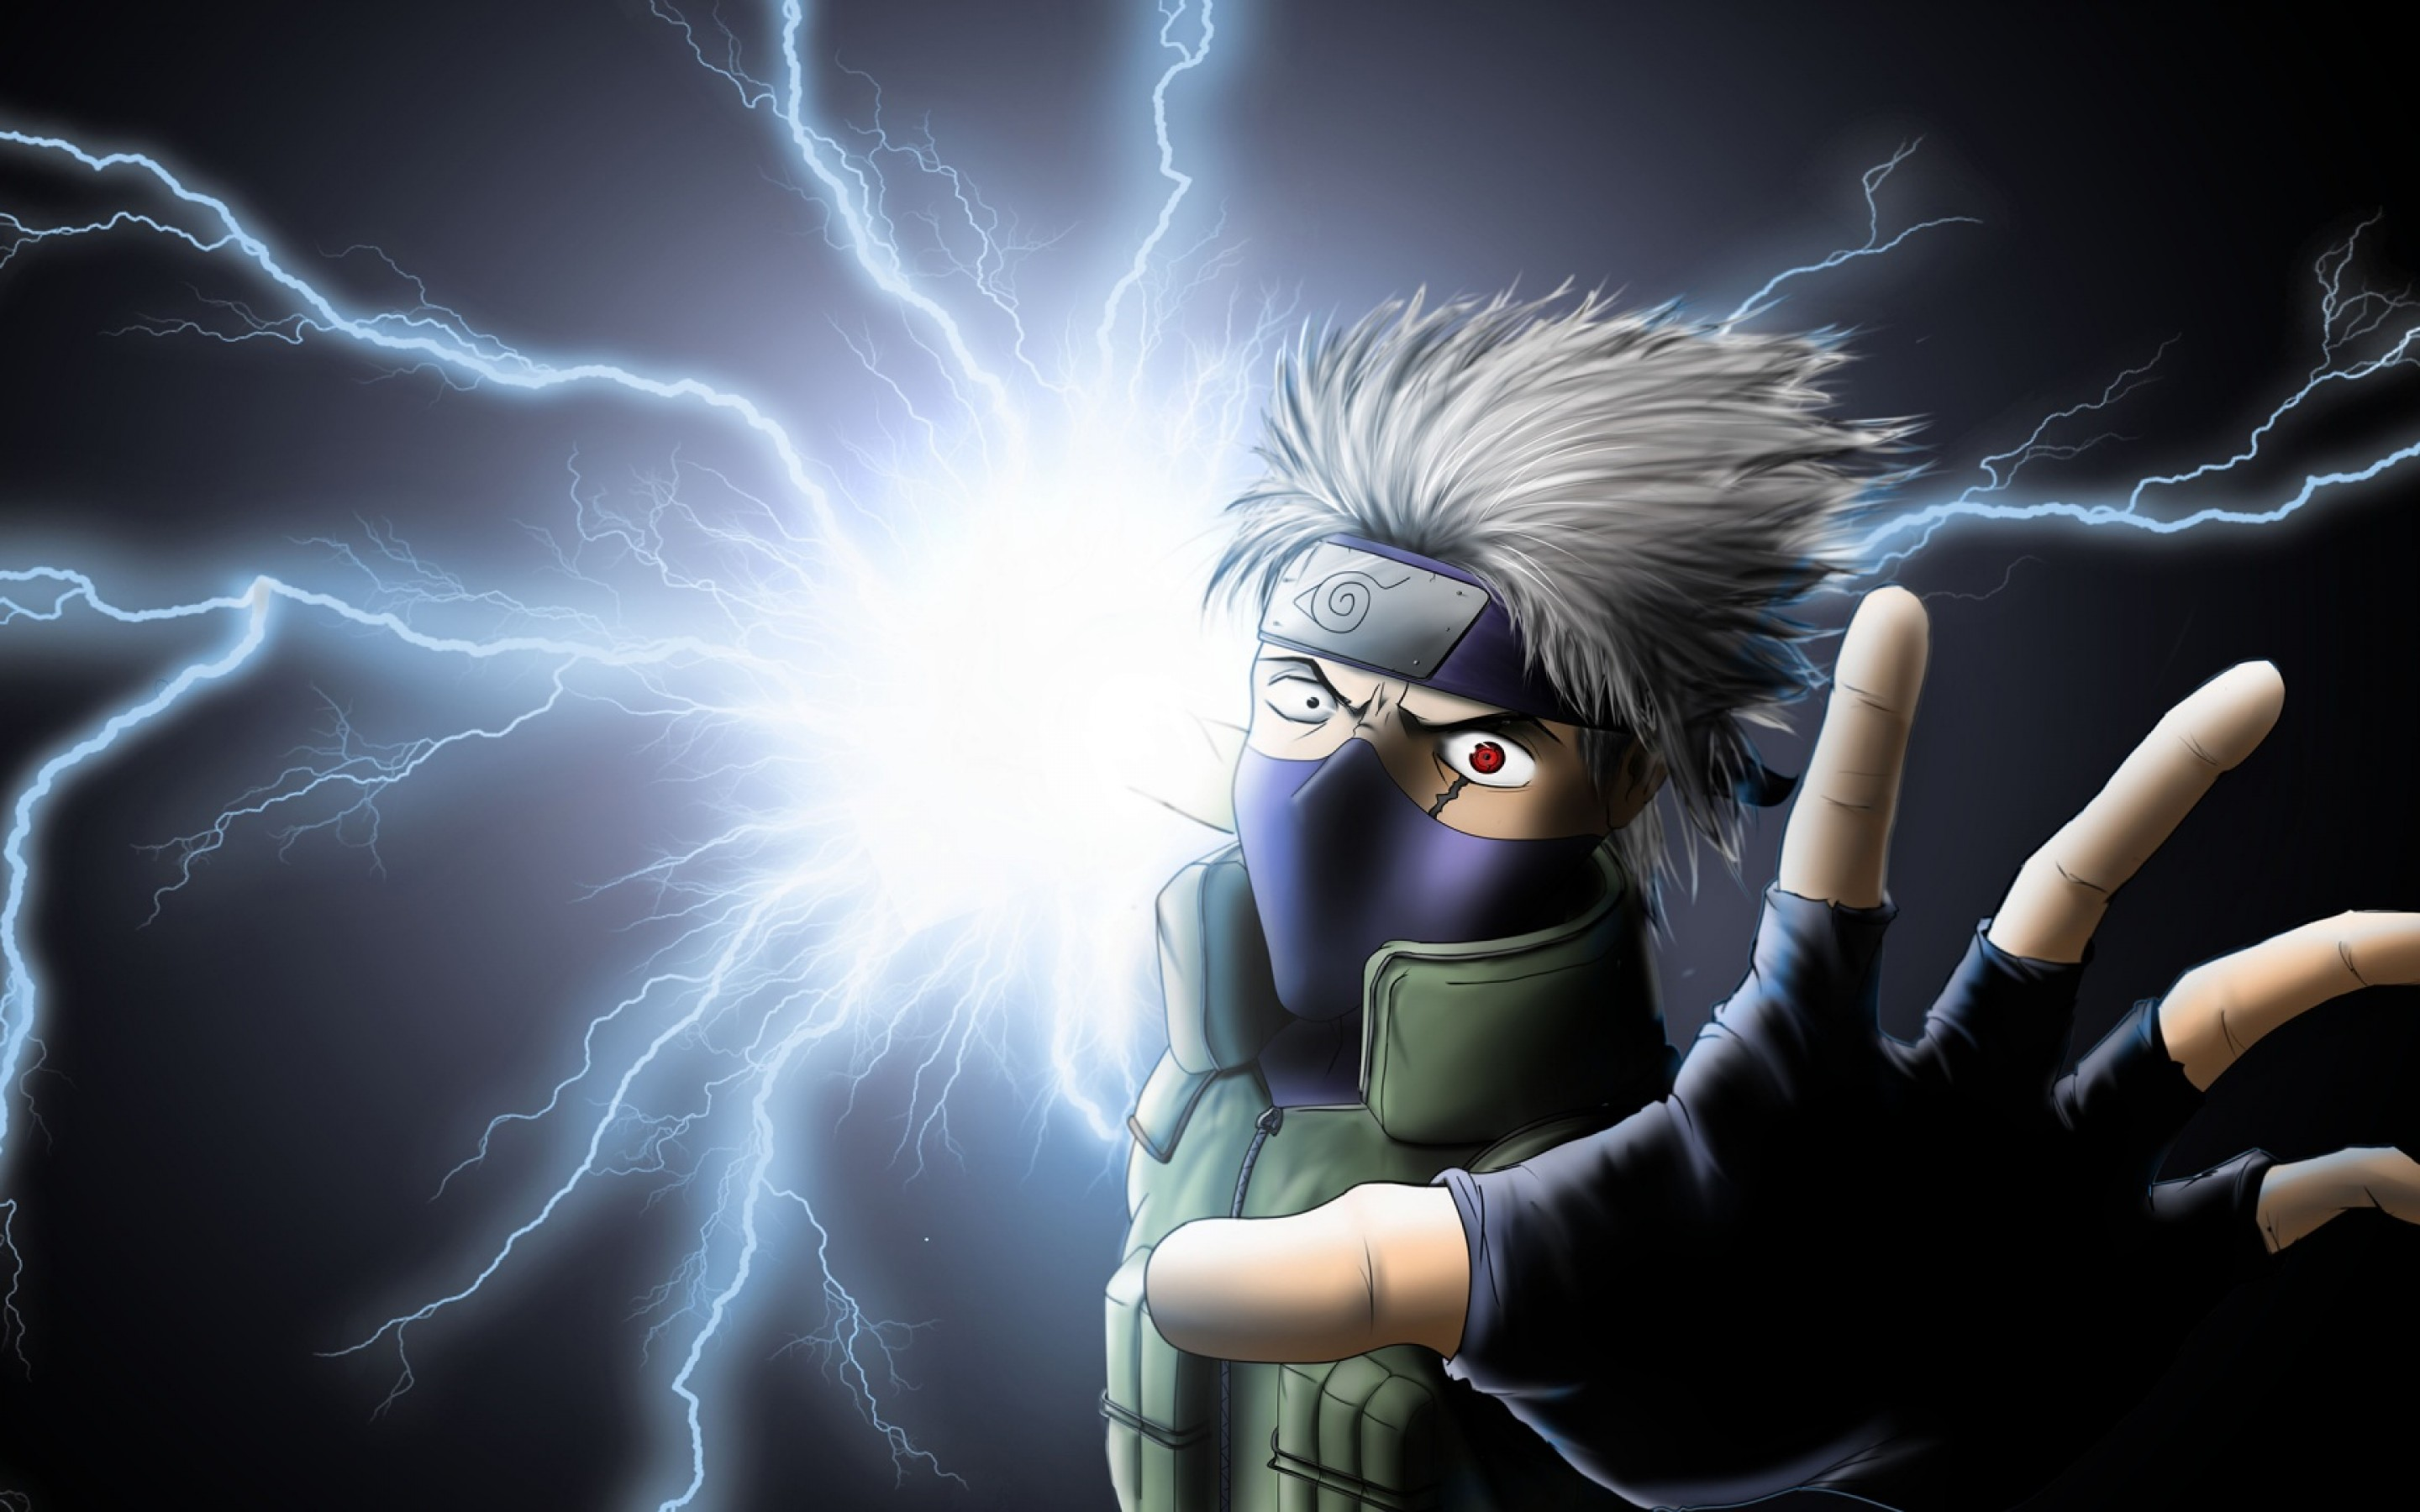 Kakashi Hatake Wallpaper 3d Kakashi Hatake Naruto Wallpaper Anime Wallpaper Better